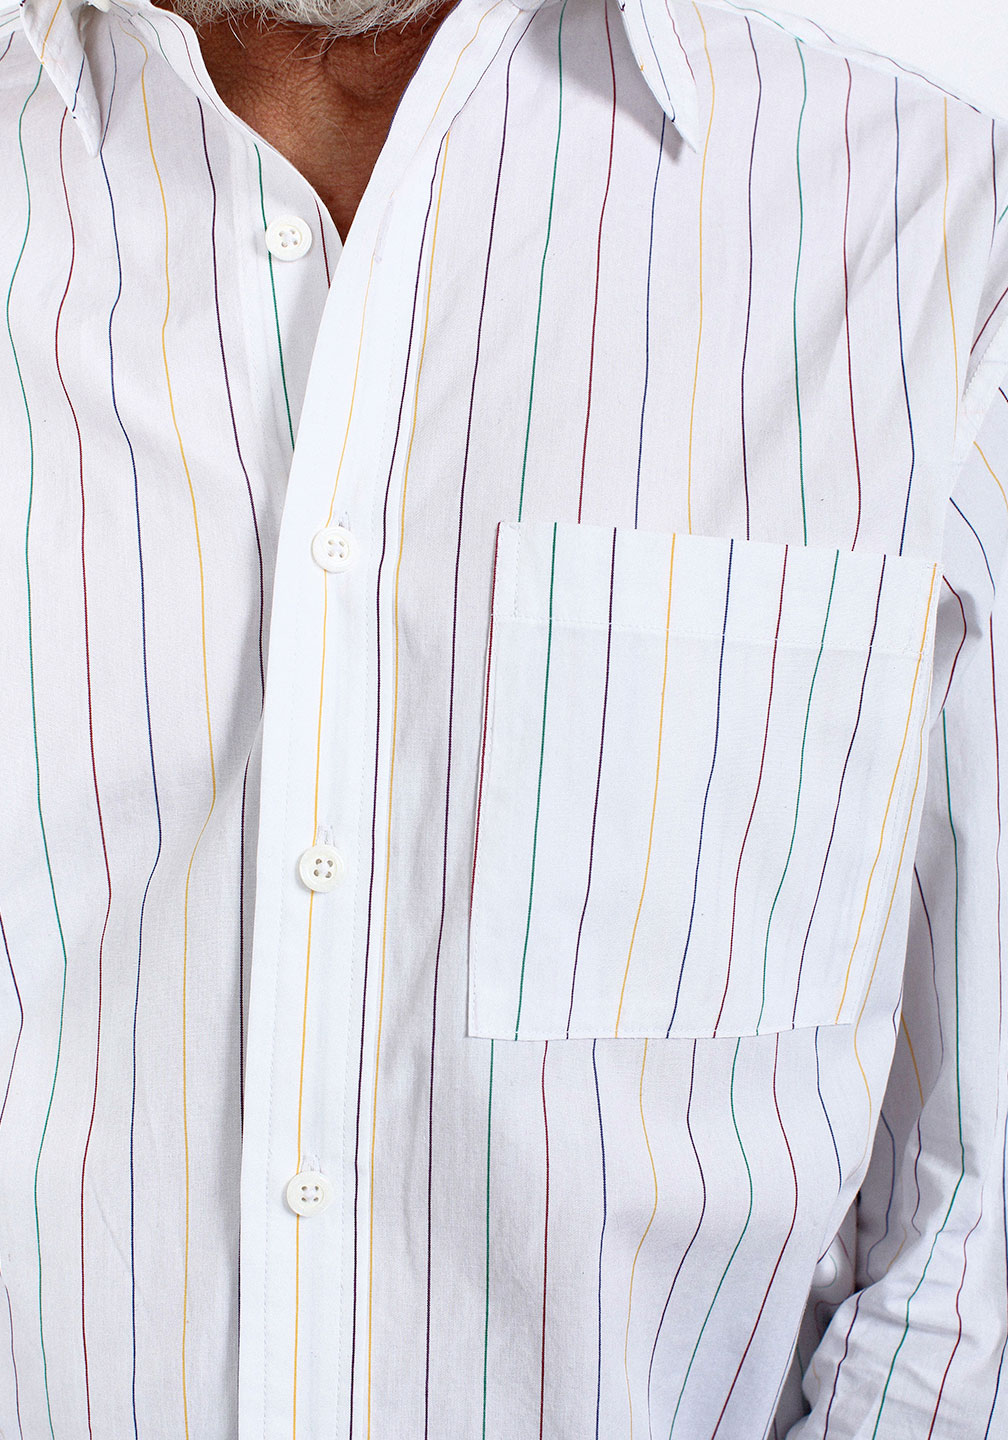 Prakash_Stripe_Detail_01